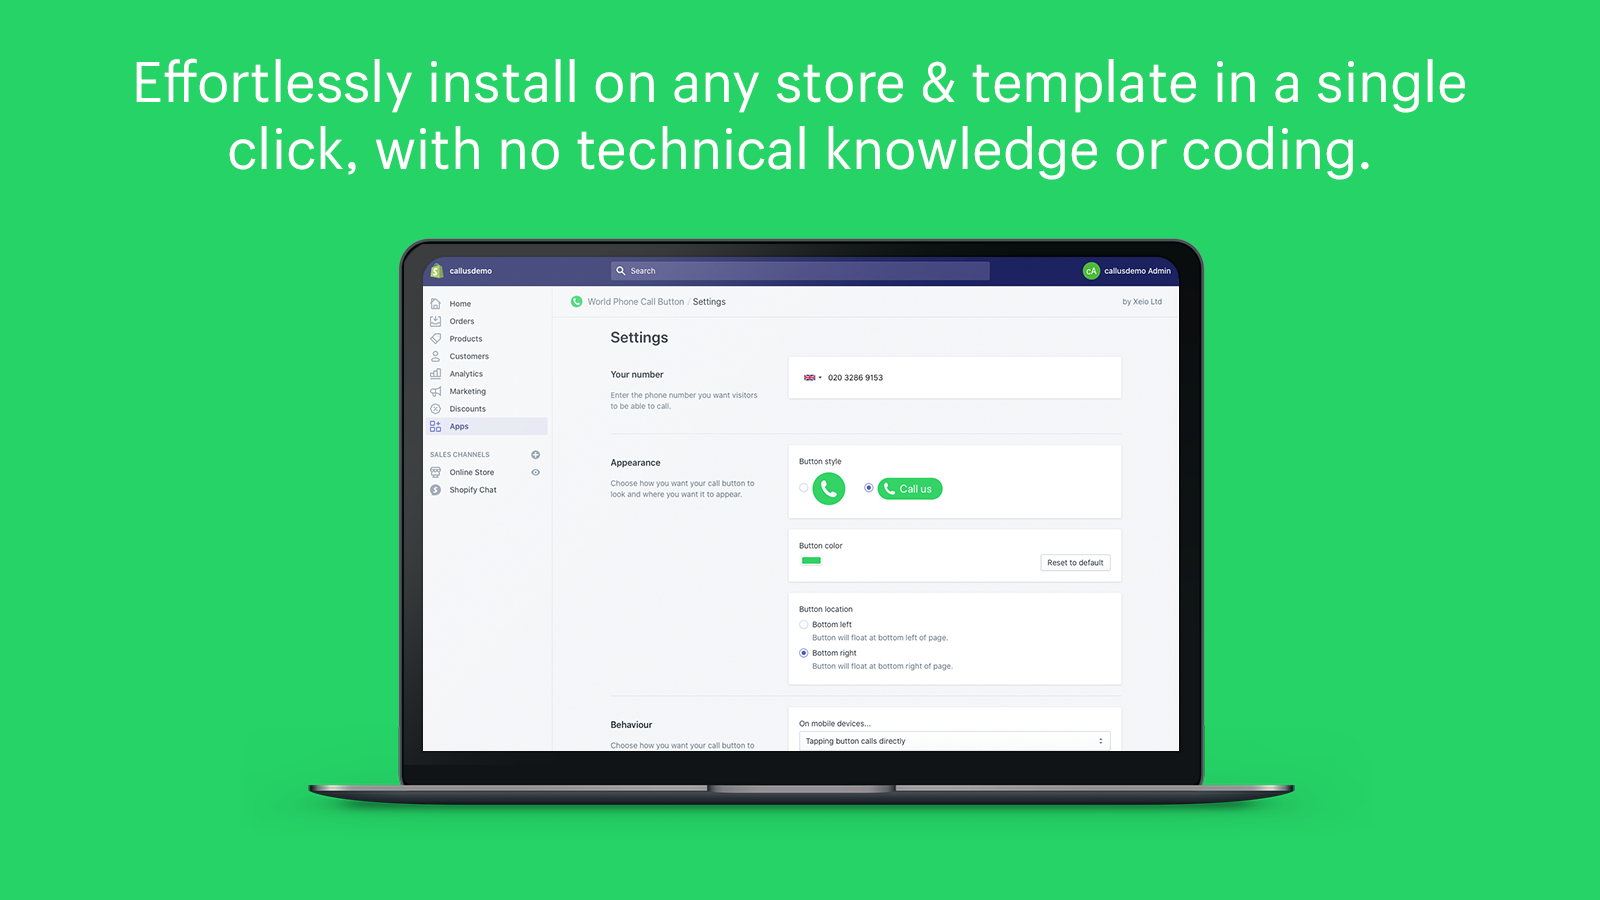 Effortlessly install on any store or template in a single click